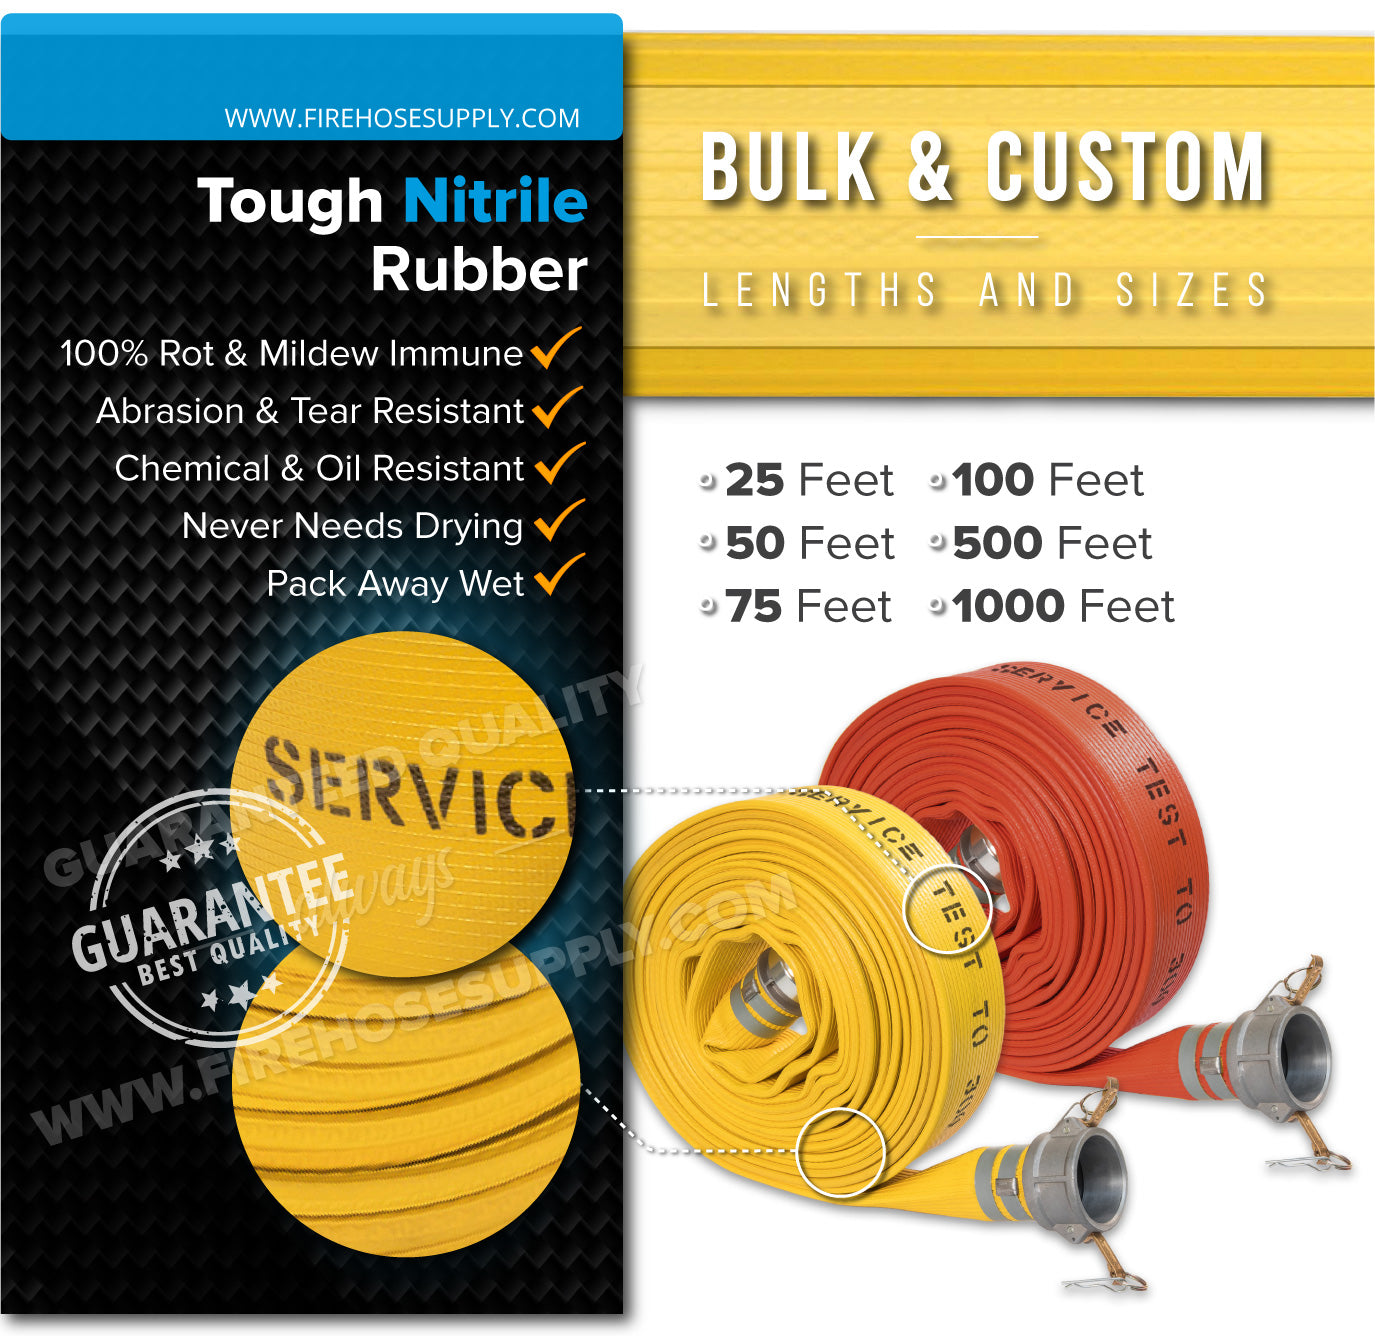 2.5 Inch Camlock Quick Connect Fire Hose Rubber Materials